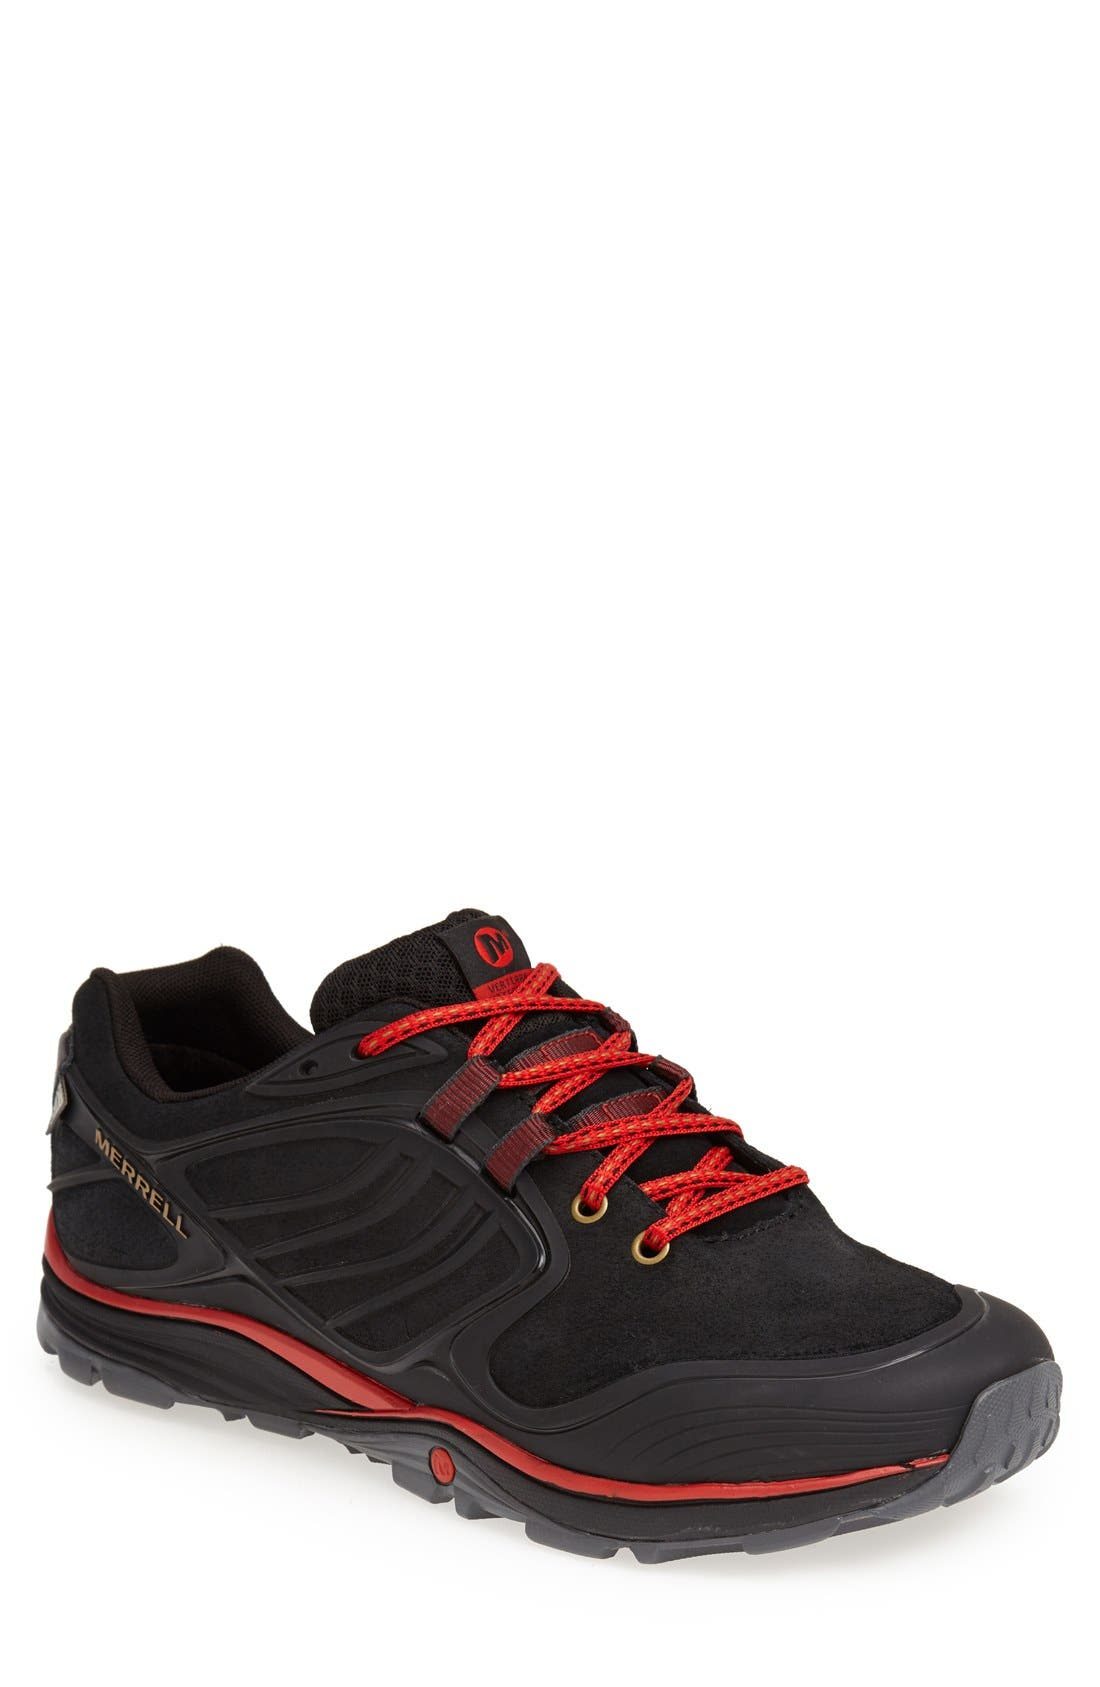 Alternate Image 1 Selected - Merrell 'Verterra' Waterproof Hiking Shoe (Men)